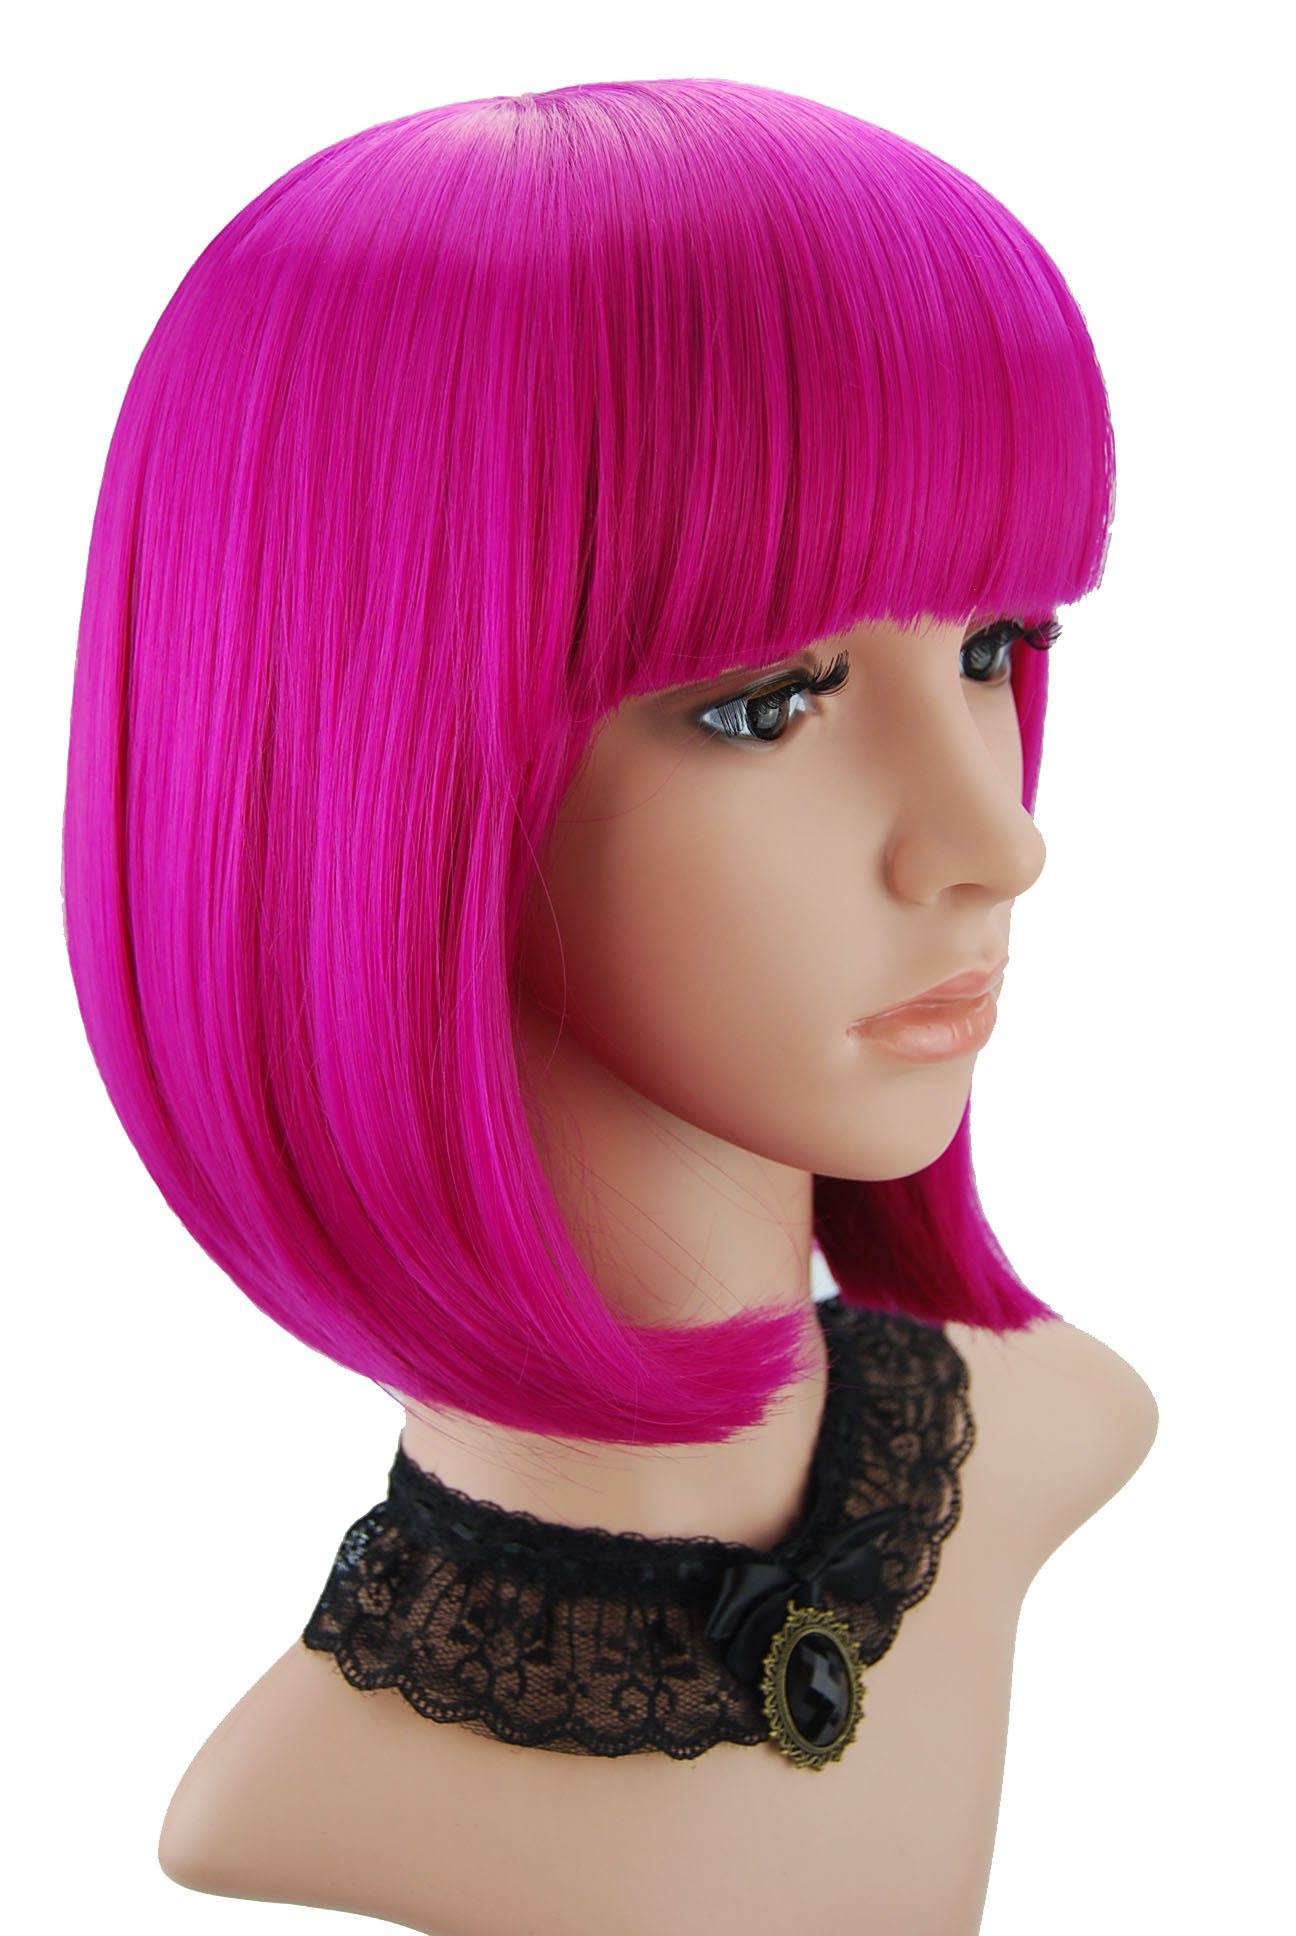 eNilecor Short Bob Hair Wigs 12'' Straight with Flat Bangs Synthetic Colorful Cosplay Daily Party Wig for Women Natural As Real Hair+ Free Wig Cap (Hot Pink)